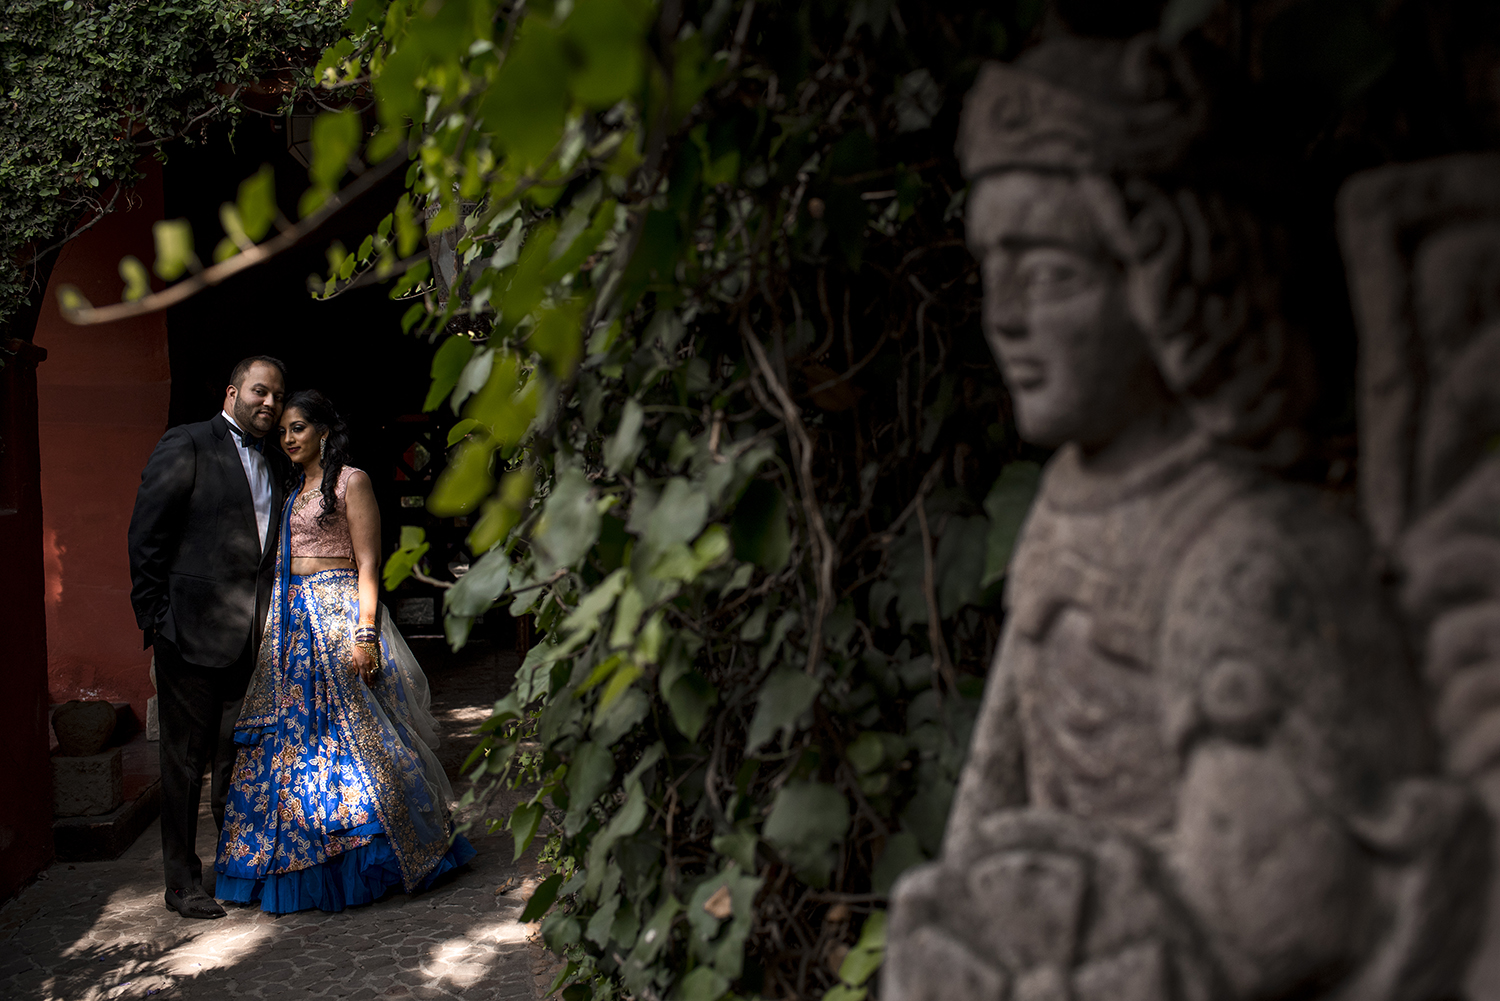 indian_wedding_san_miguel_de_allende_chio_garcia_photographer (44).jpg